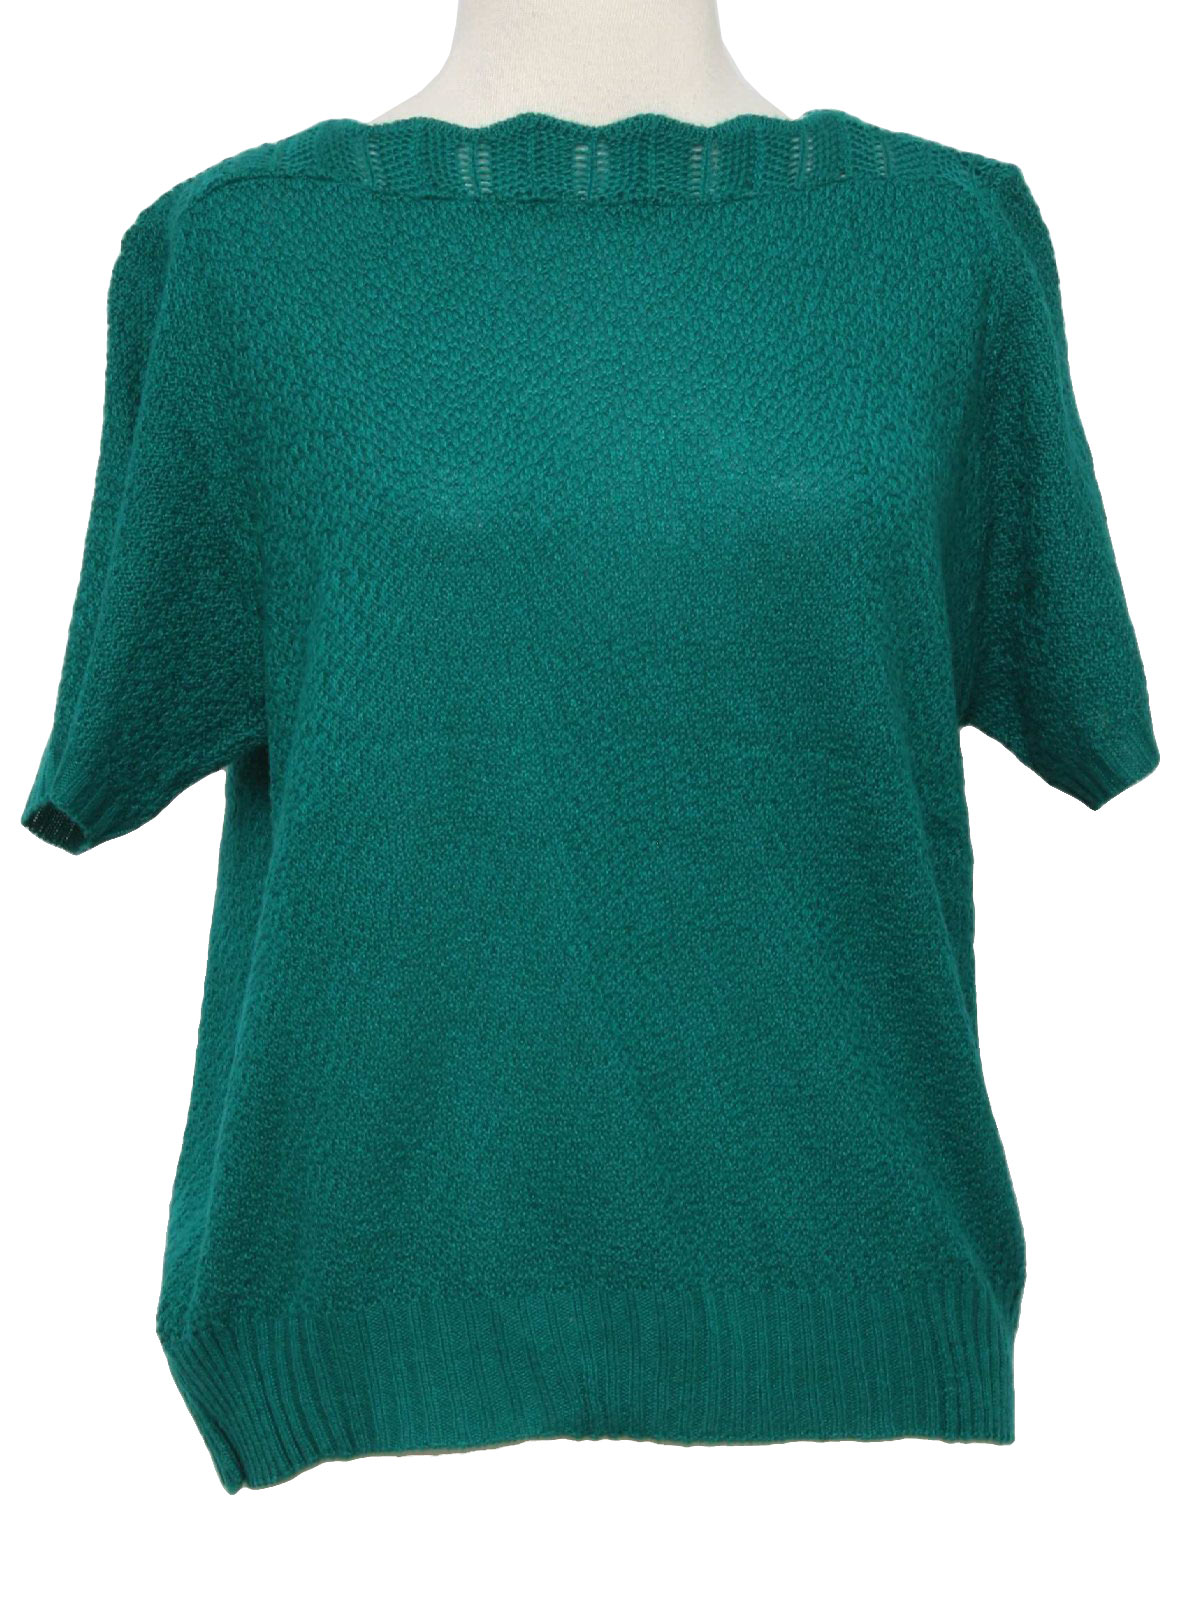 Eighties Vintage Sweater: 80s -Missing Label- Womens emerald green ...